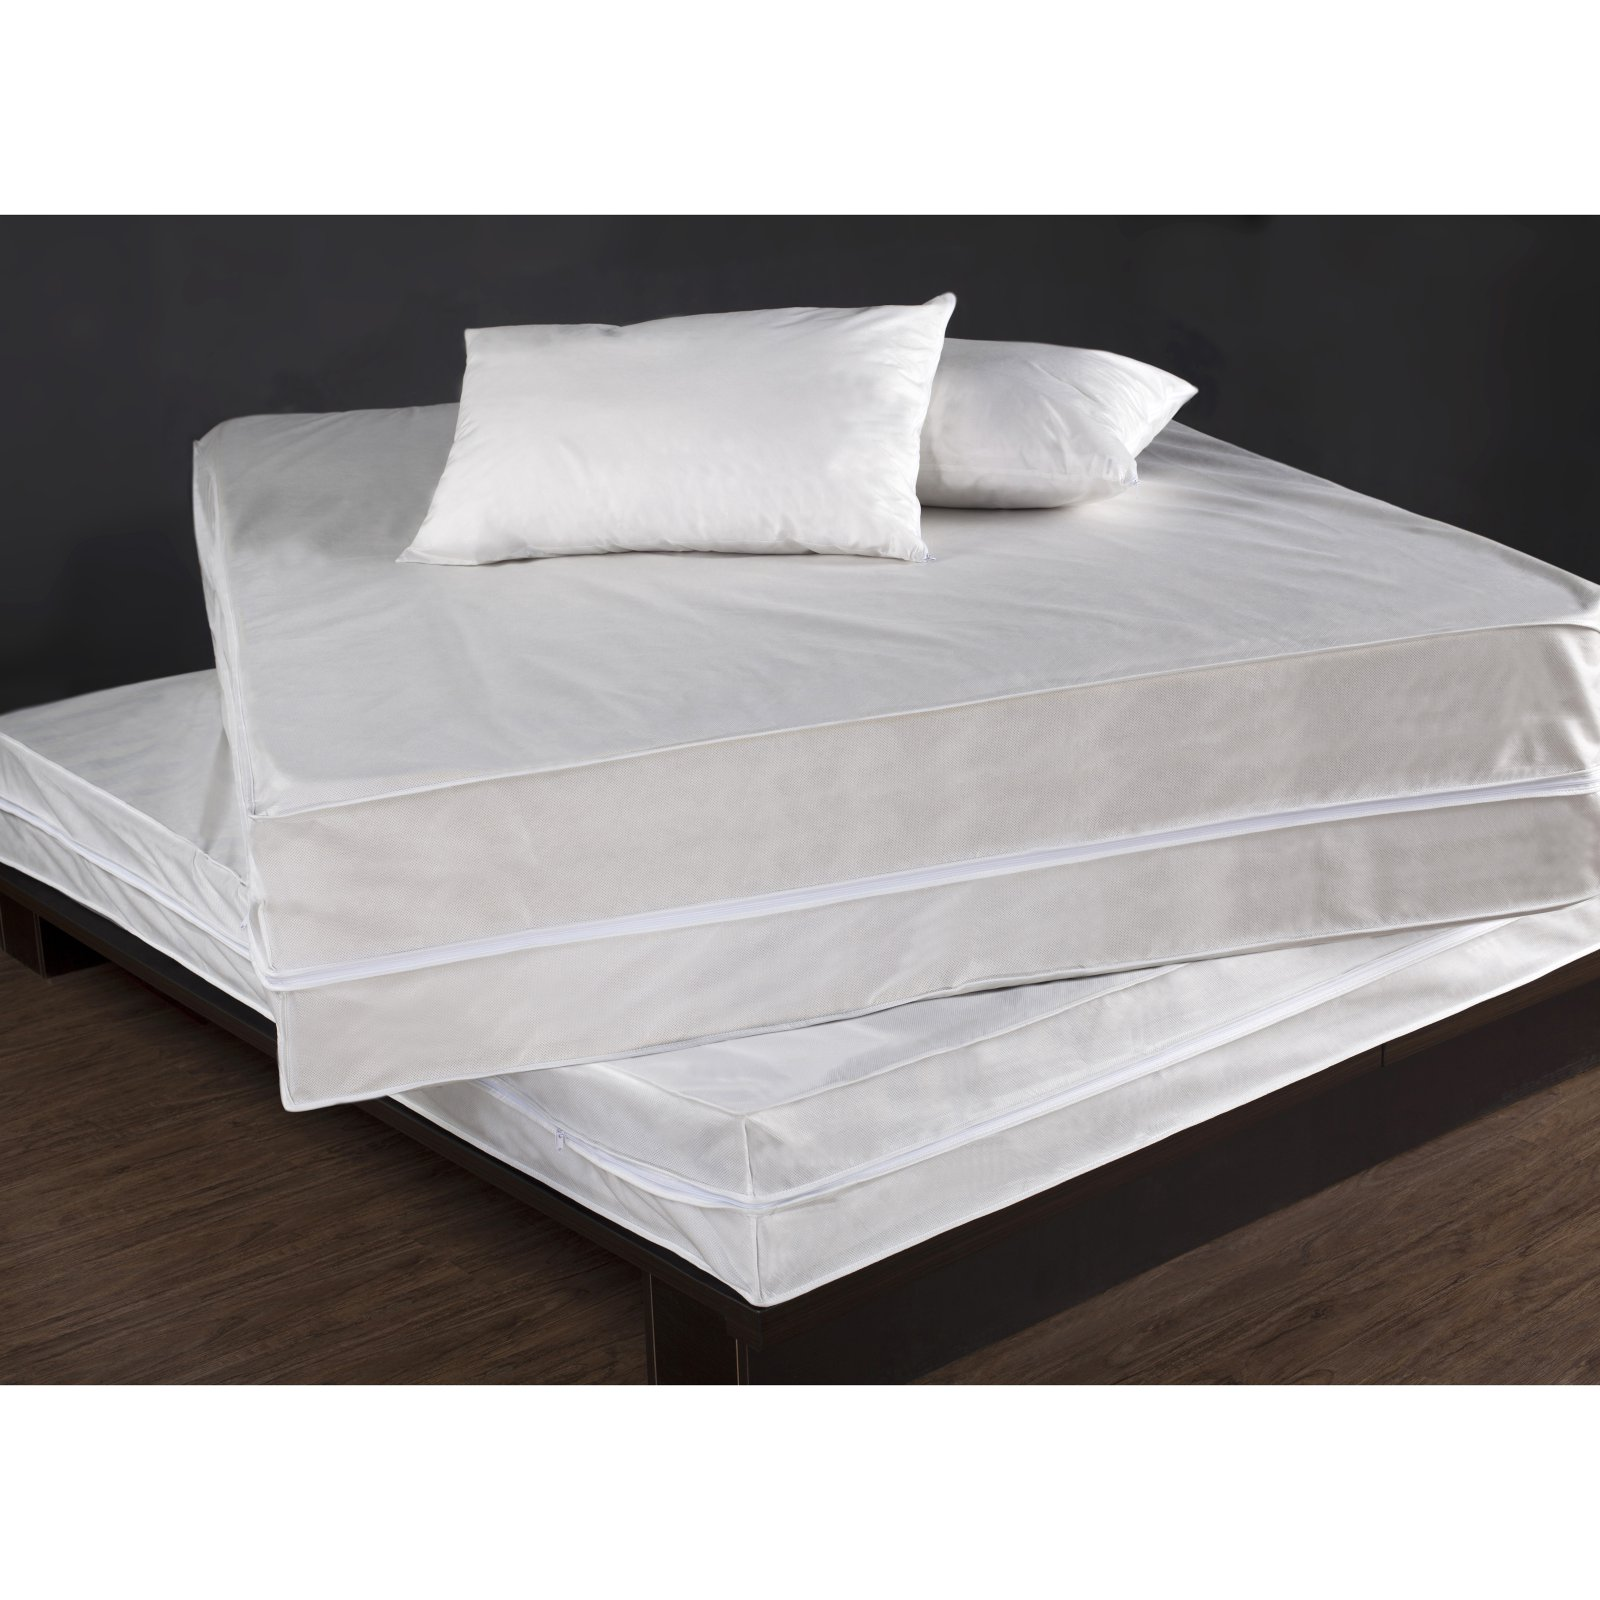 PermaShield Bed Bug and Dust Mite Control Waterproof Polypropylene Complete Bed Protector Set